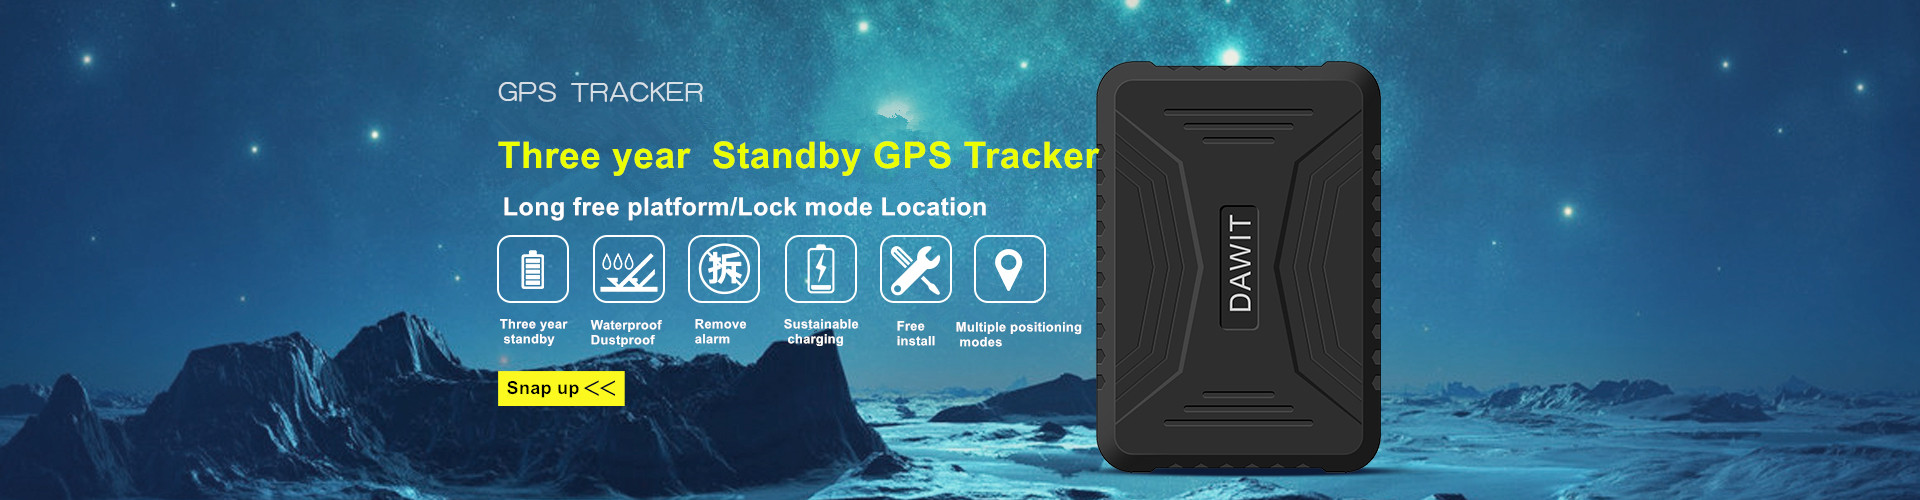 Three year standby gps tracker TK800